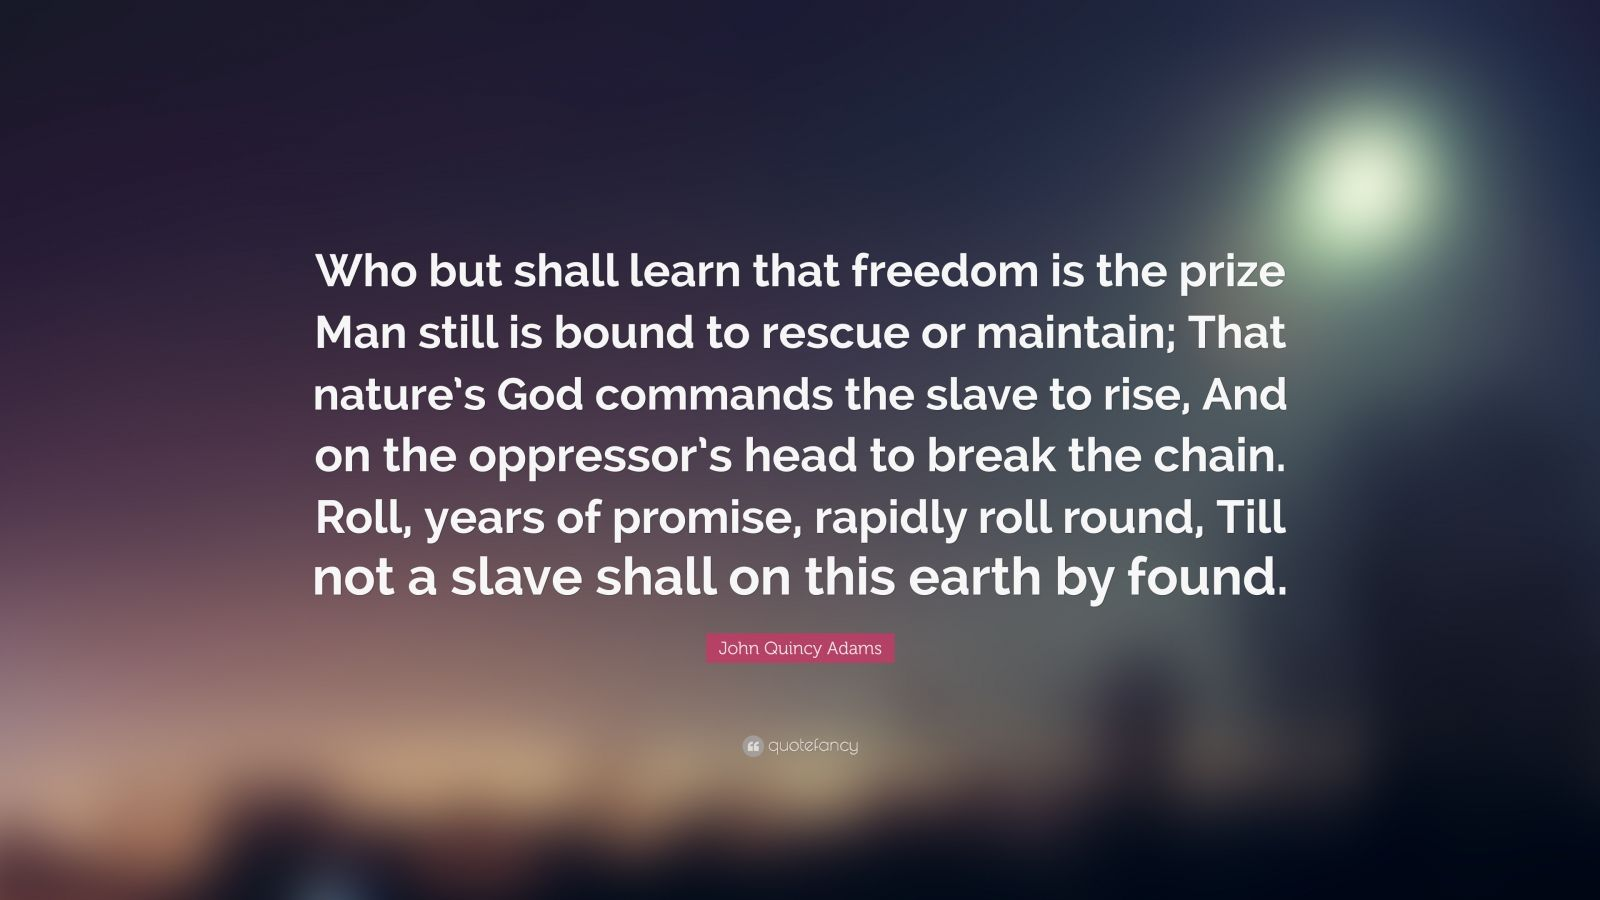 """John Quincy Adams Quote: """"Who but shall learn that freedom is the prize Man still is bound to rescue or maintain; That nature's God commands the slave to rise, And on the oppressor's head to break the chain. Roll, years of promise, rapidly roll round, Till not a slave shall on this earth by found."""""""